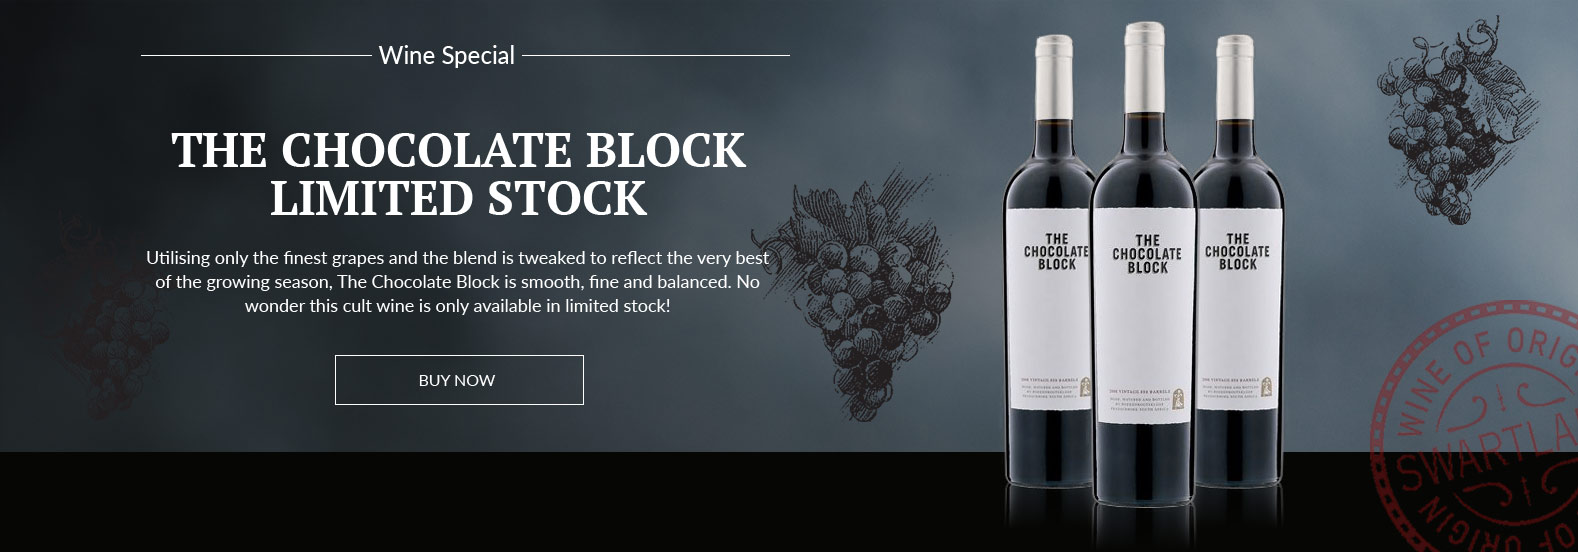 Black background with three bottles of The Chocolate Box wine